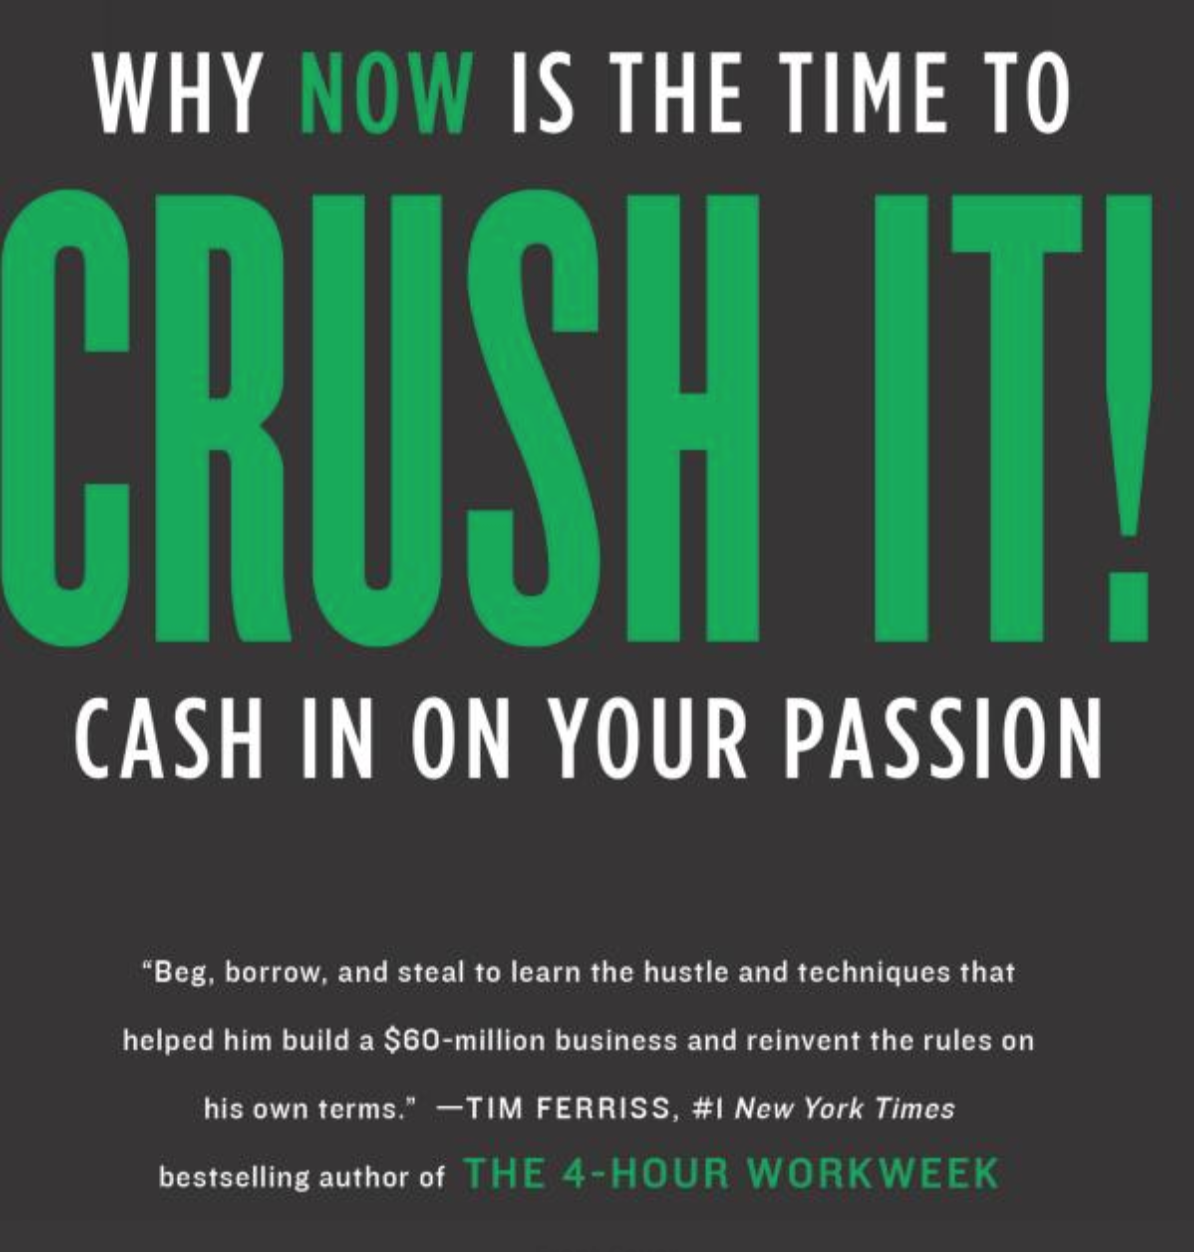 Crush It! Gary Vaynerchuk